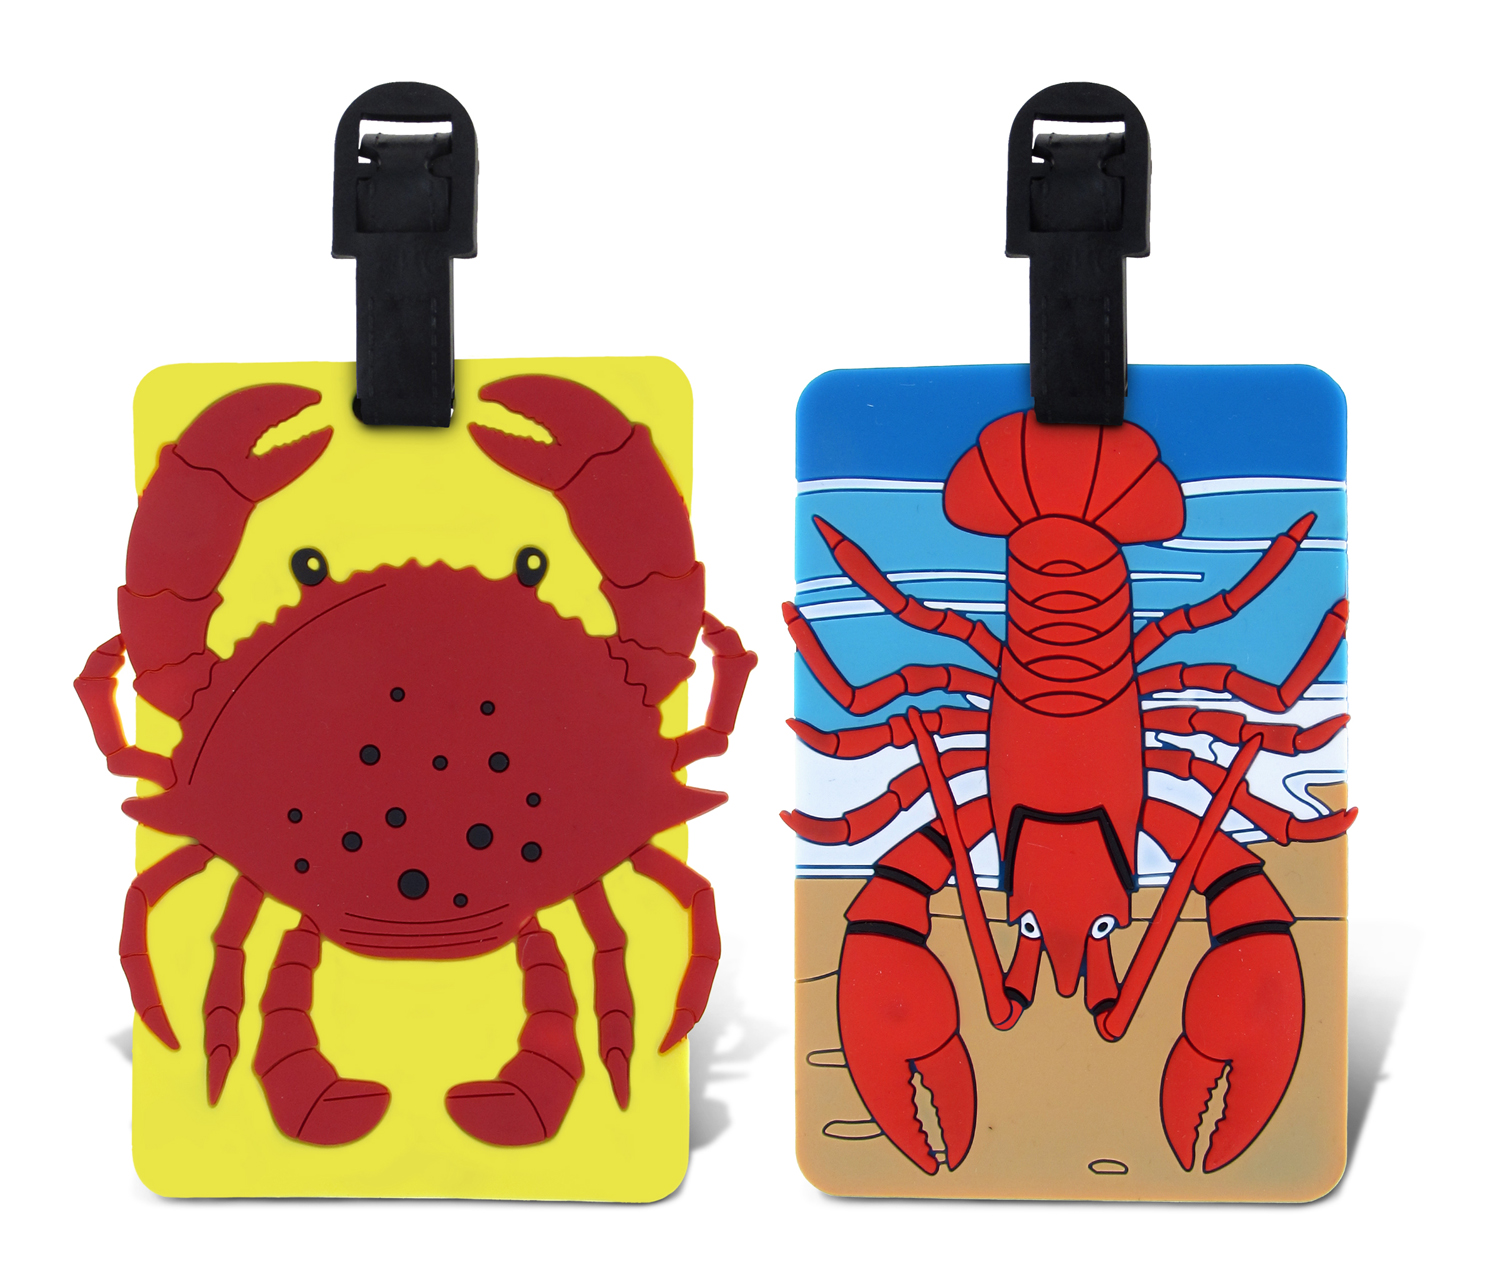 Puzzled Taggage Crab And Lobster Luggage Tag 3.5X5 Inch